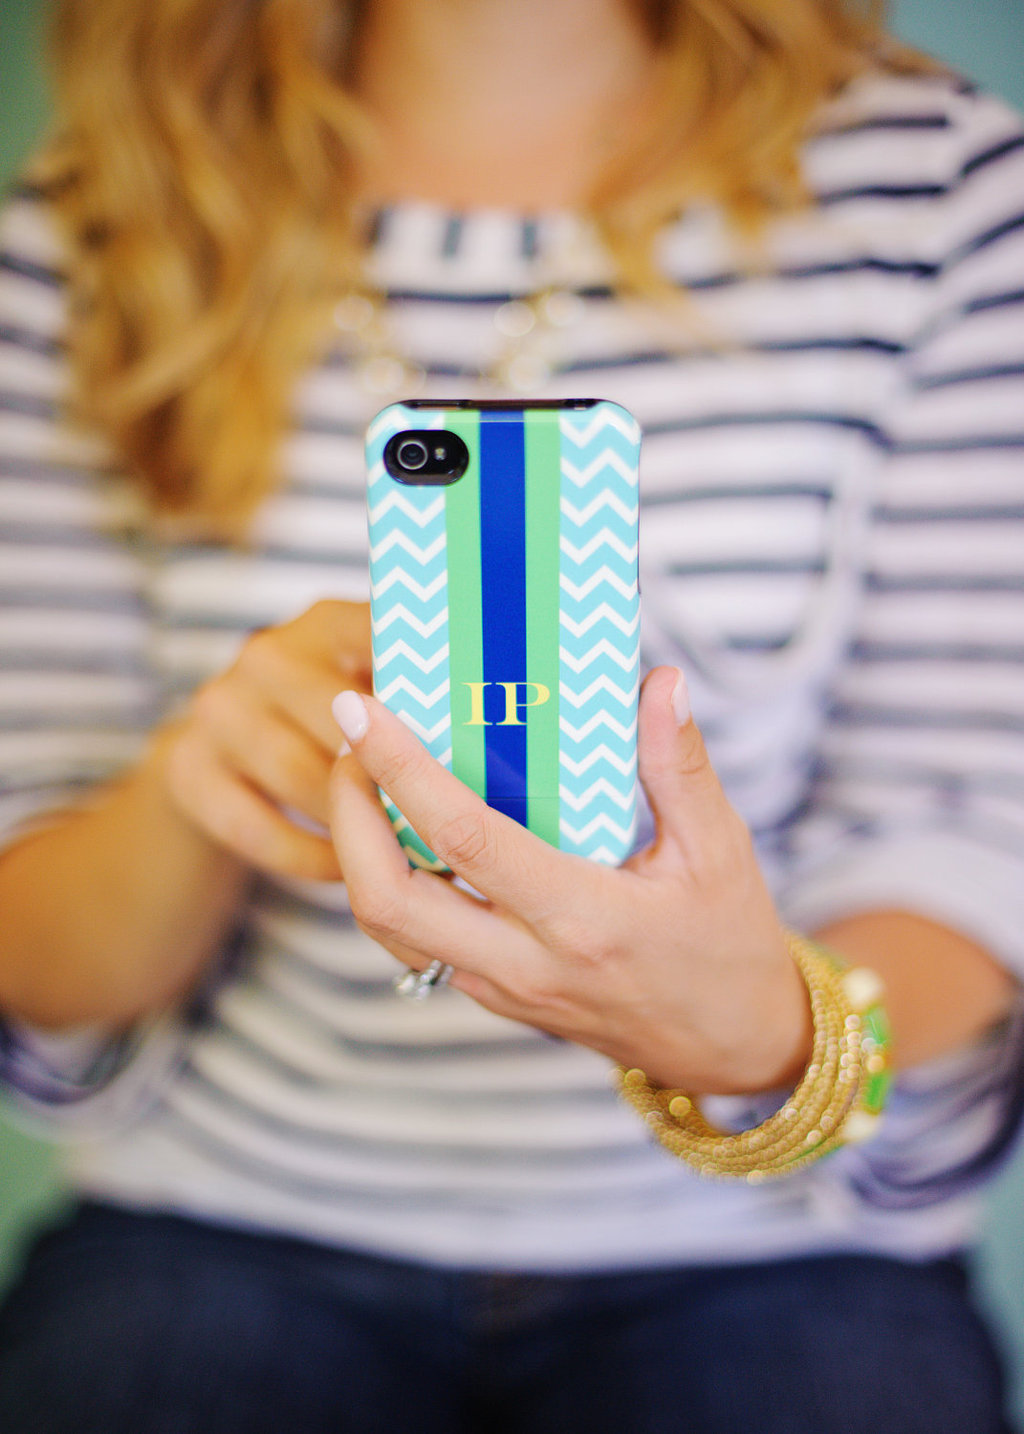 Favorite-iphone-cases-for-brides-modern-tech-weddings-chevron-monogram.full